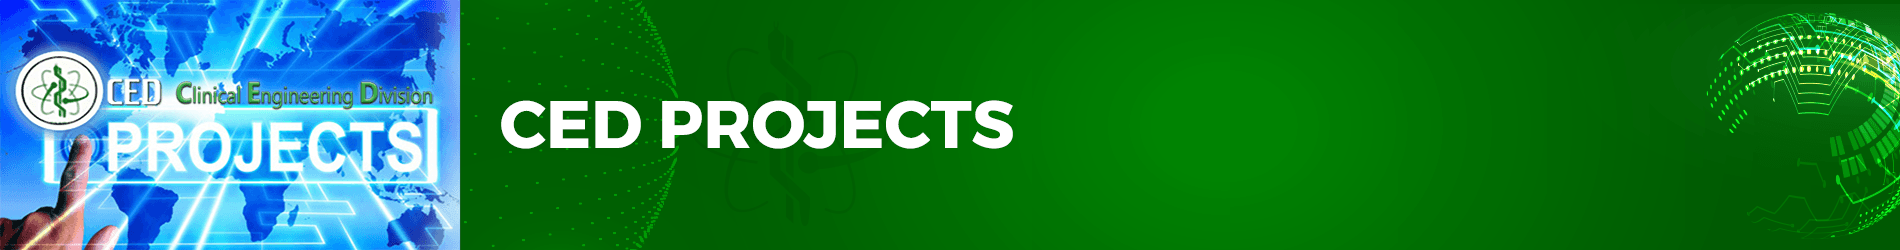 header ced projects